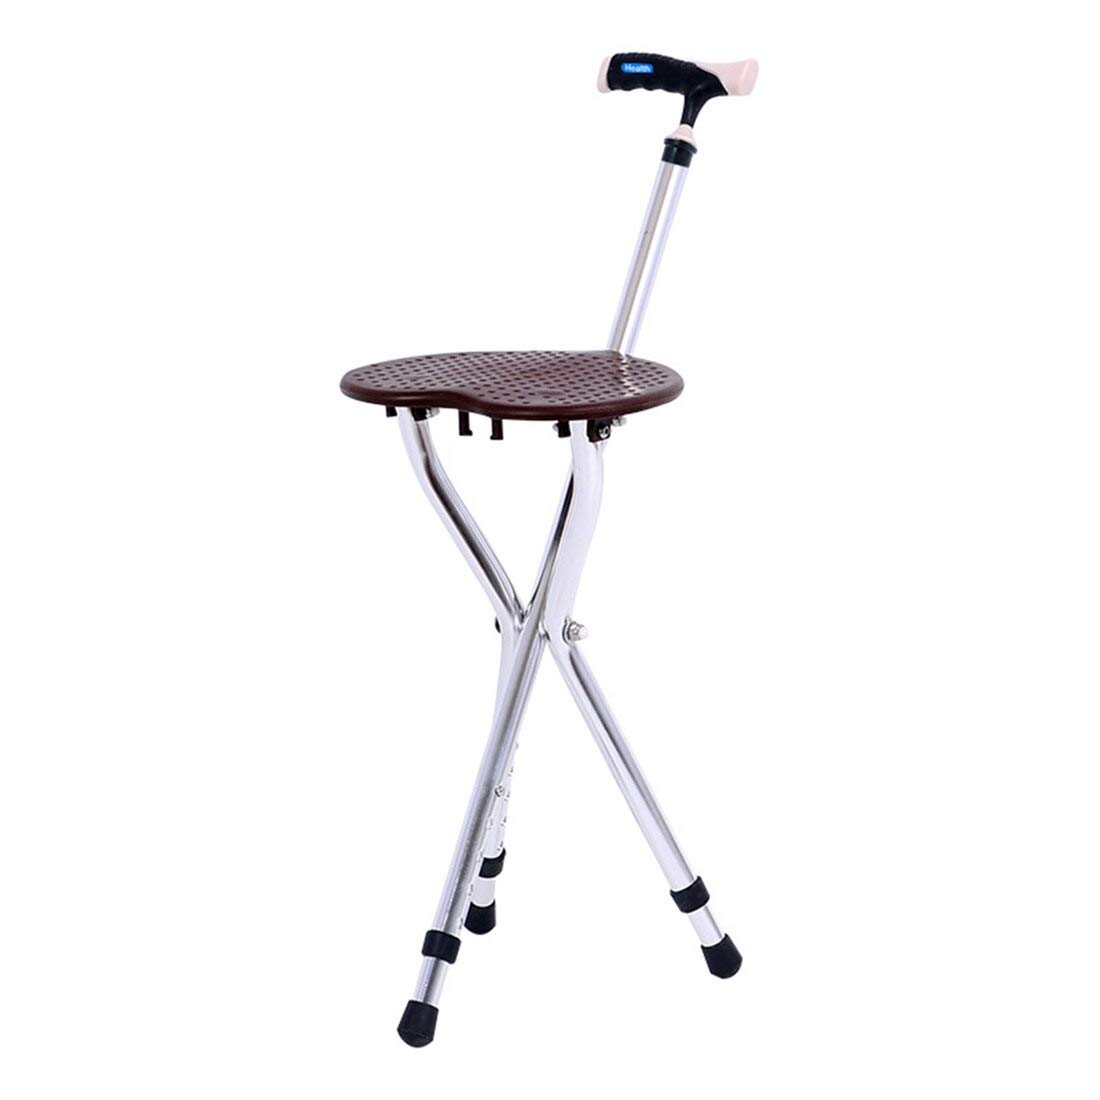 Health Folding Cane Seat Stool Old People Retractable Lightweight Adjustable Height Walking 300 lbs Capacity Combo Three-Legged Deluxe Massage Crutches Aluminum Travel Aid by Autopeck Cane